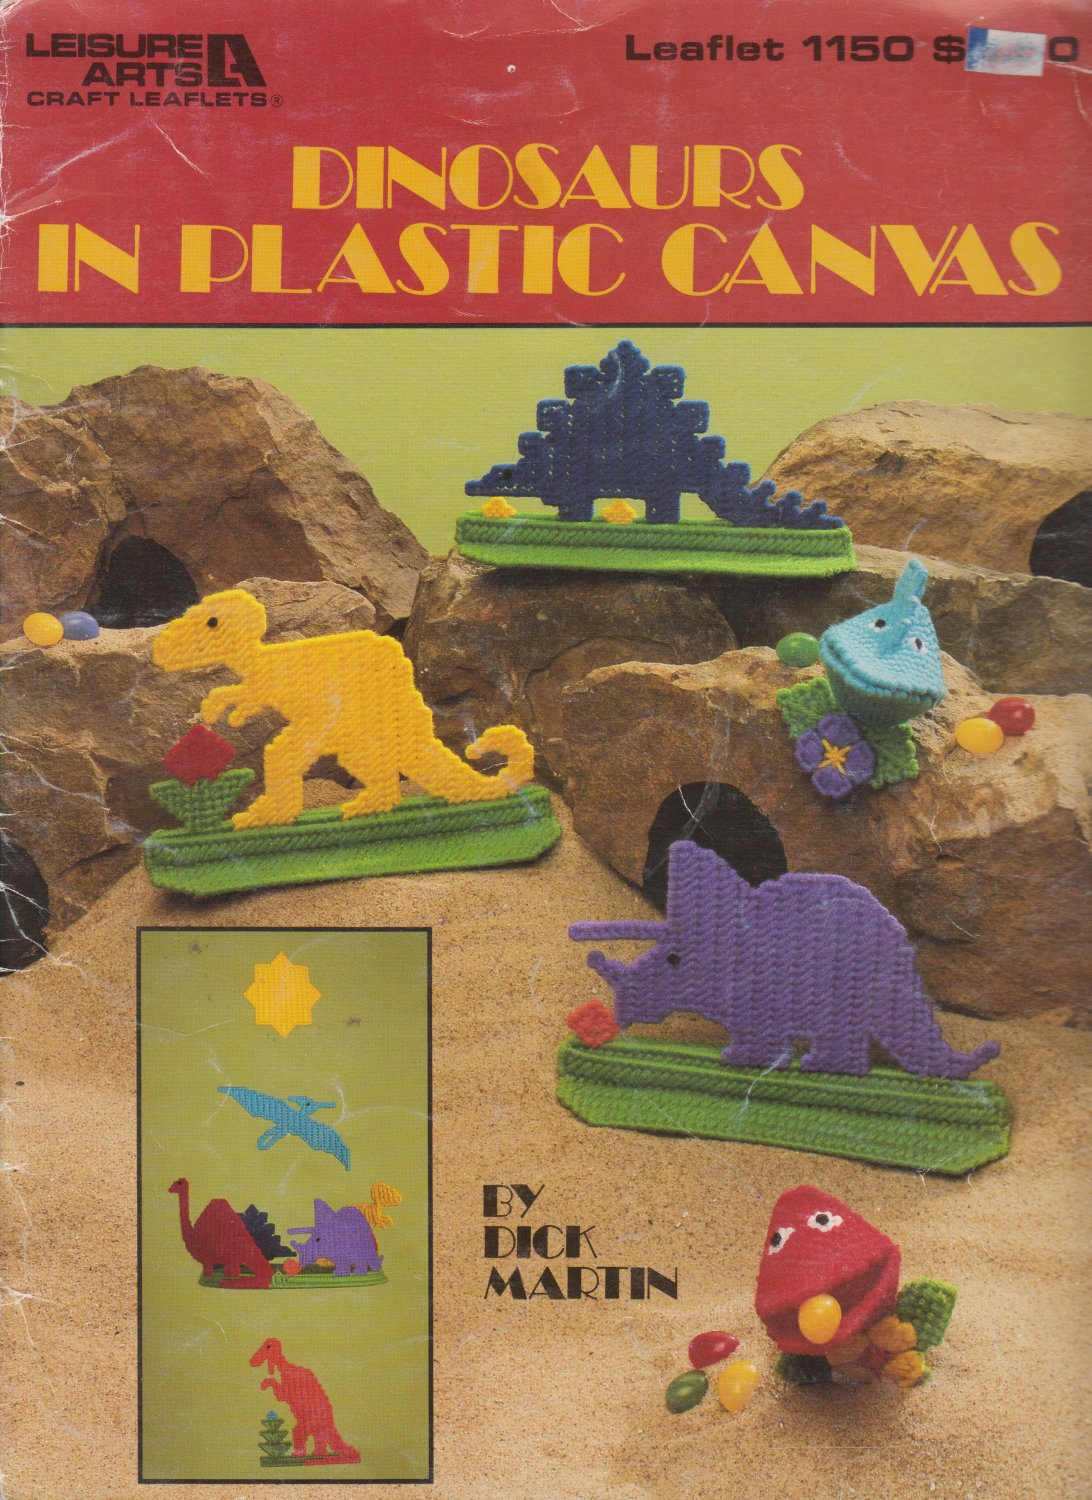 Leisure Arts 1988 Leaflet #1150 Dinosaurs in Plastic Canvas